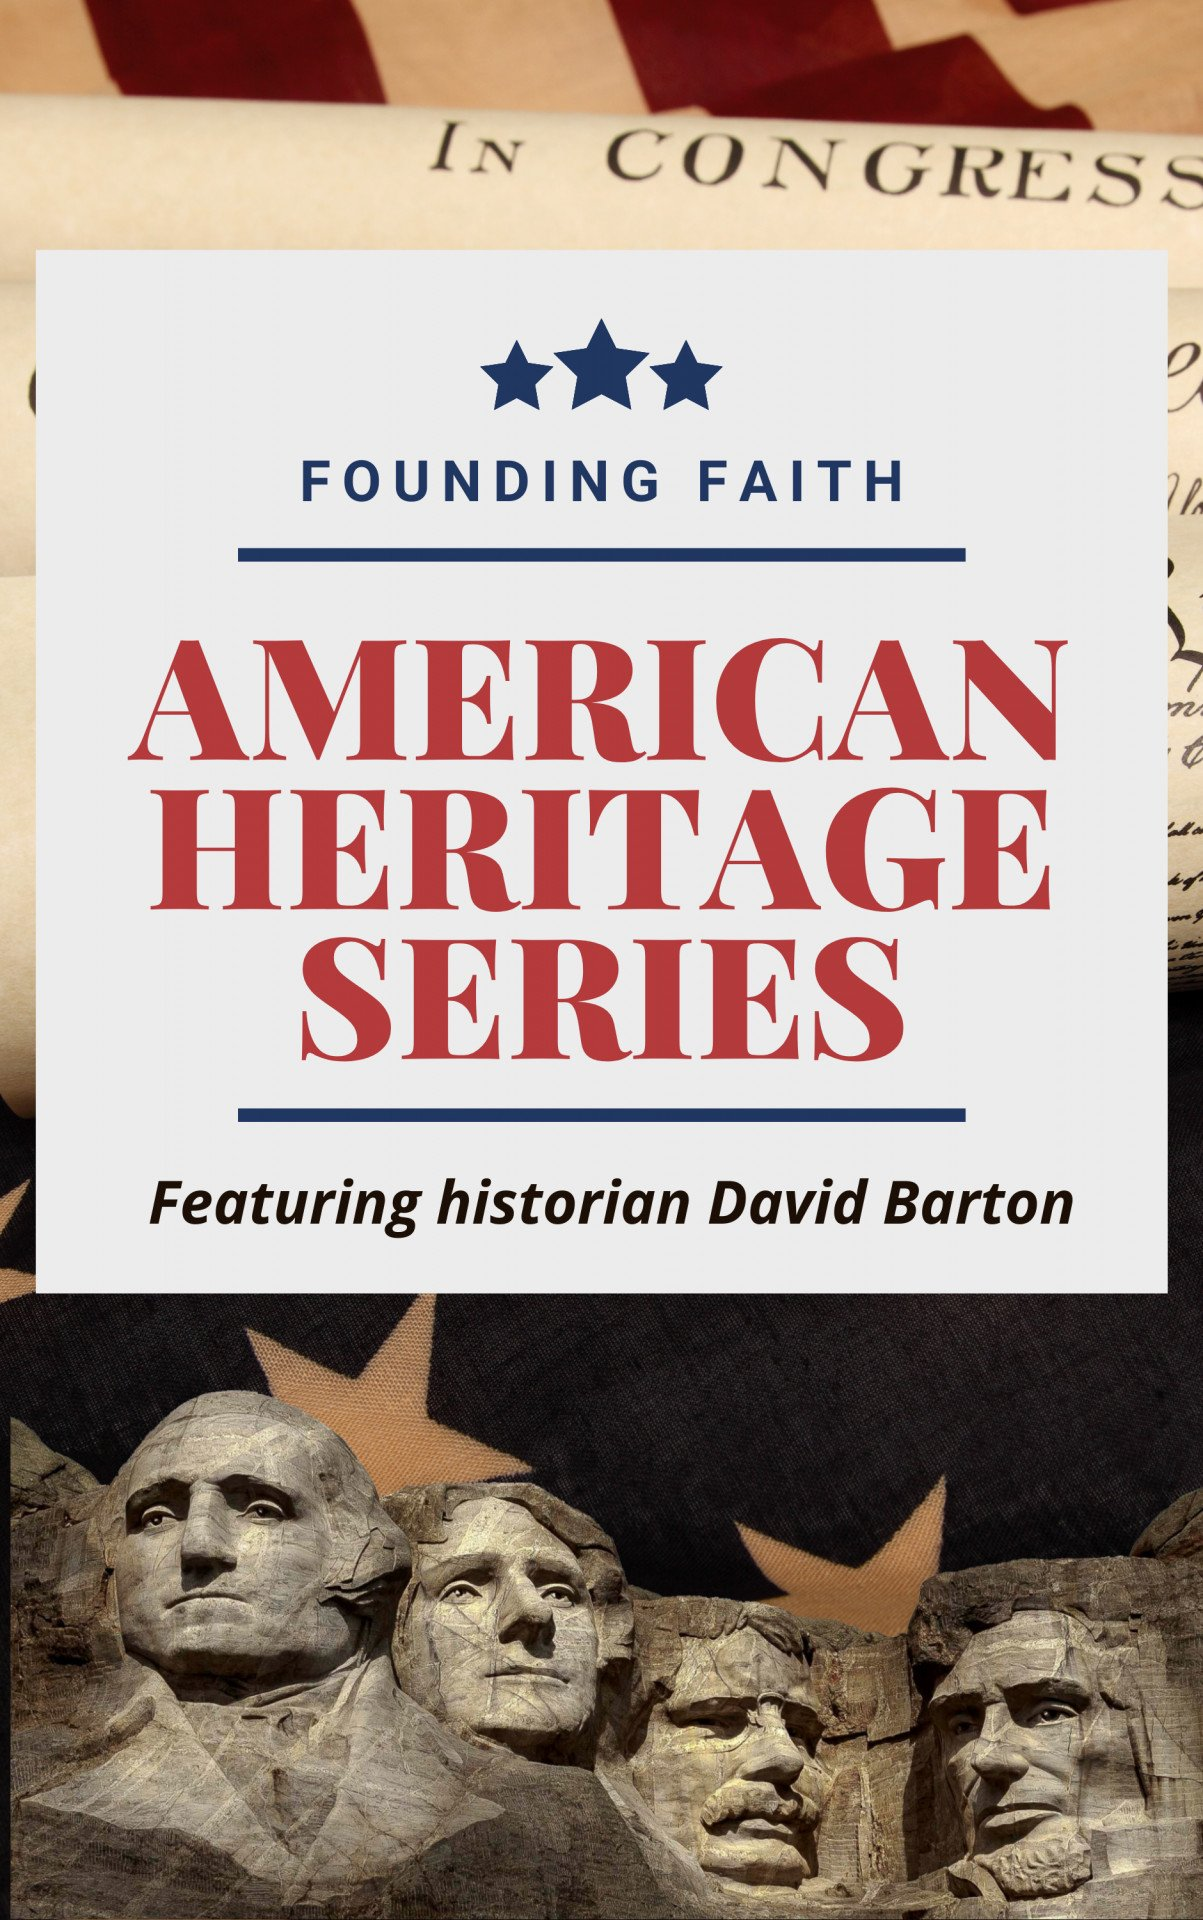 American Heritage Founding Faith LONG VERTICAL AD